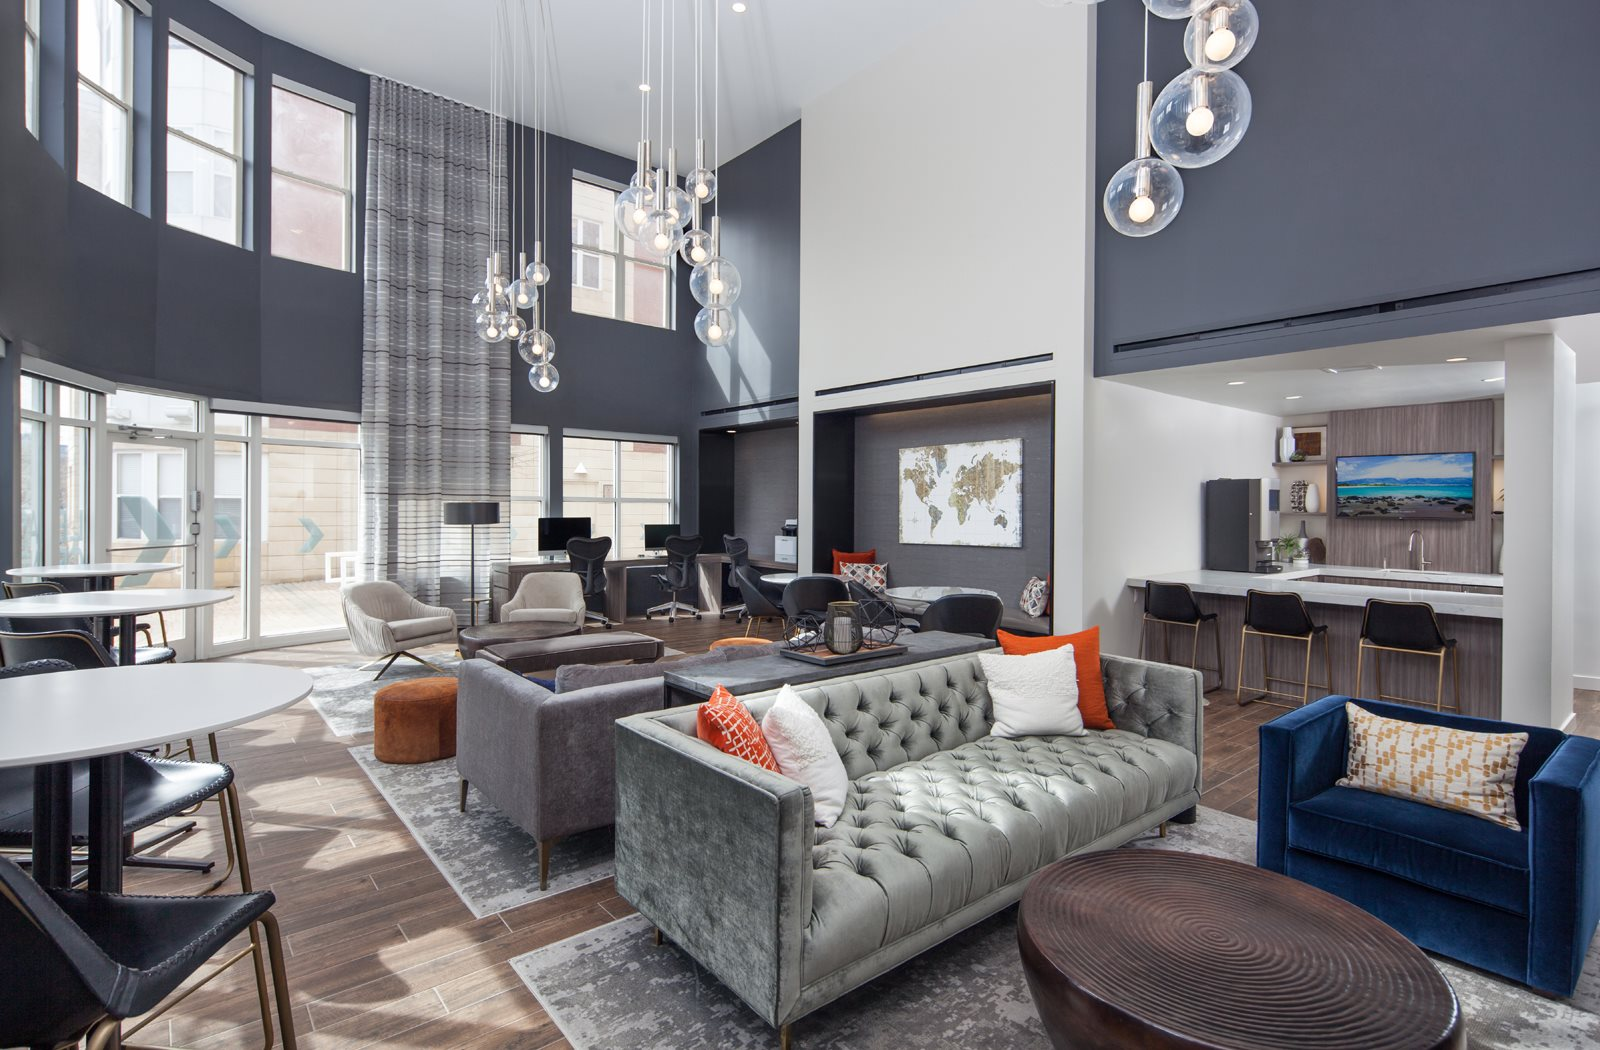 The Reserve | Apartments in Evanston, IL